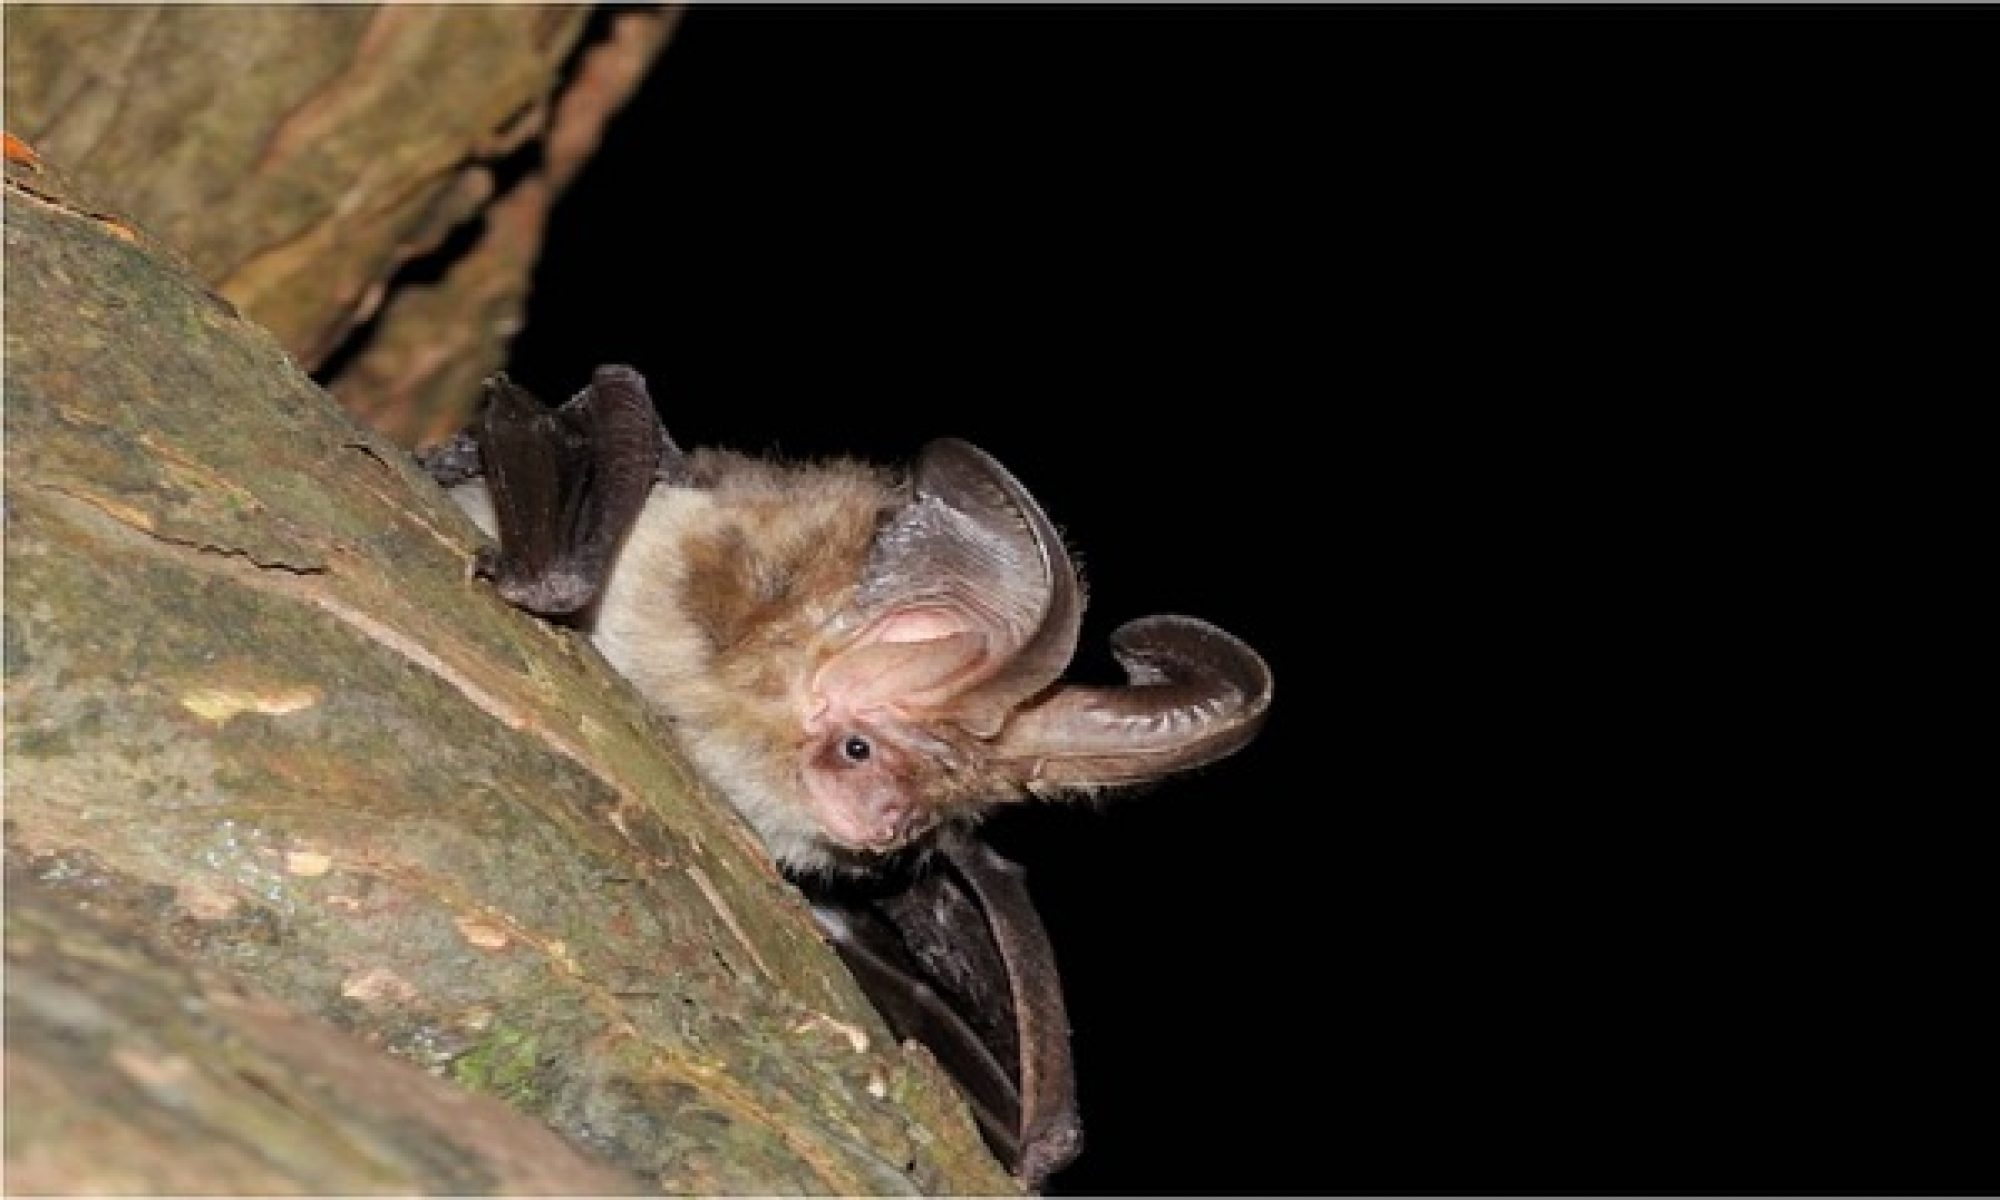 Monmouthshire Bat Group